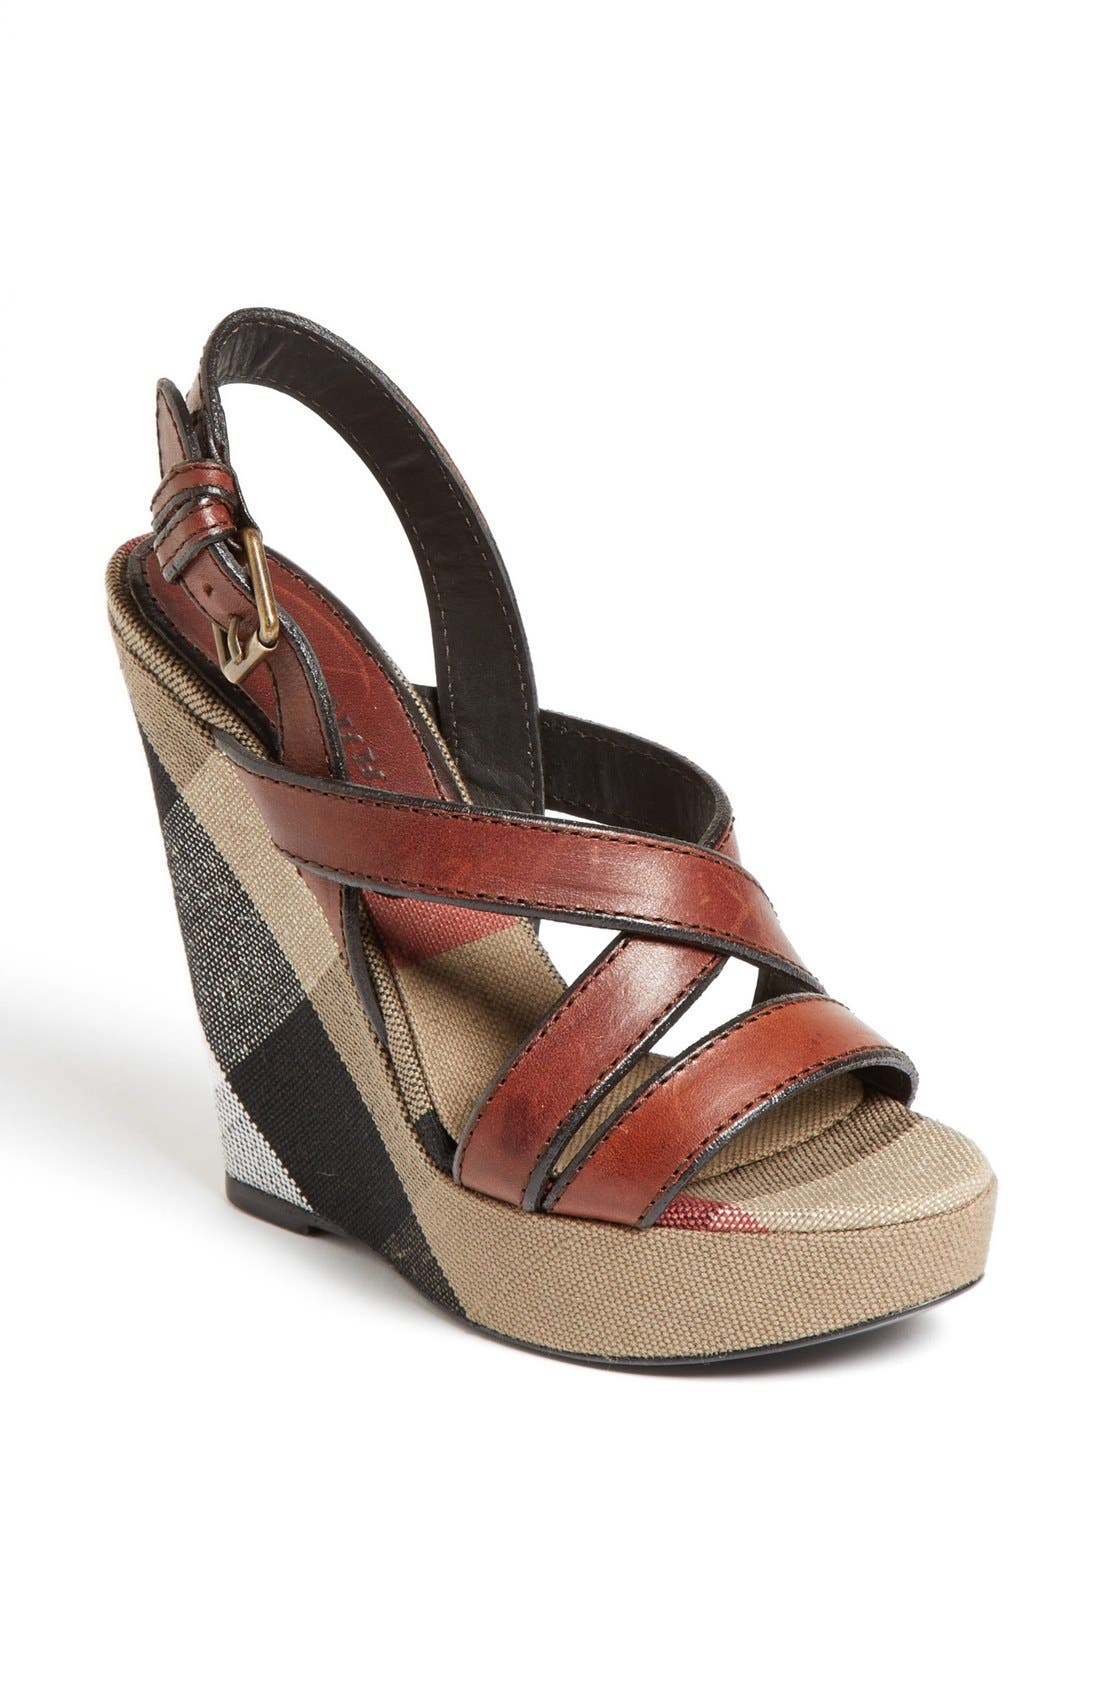 Alternate Image 1 Selected - Burberry 'Warlow' Leather Sandal